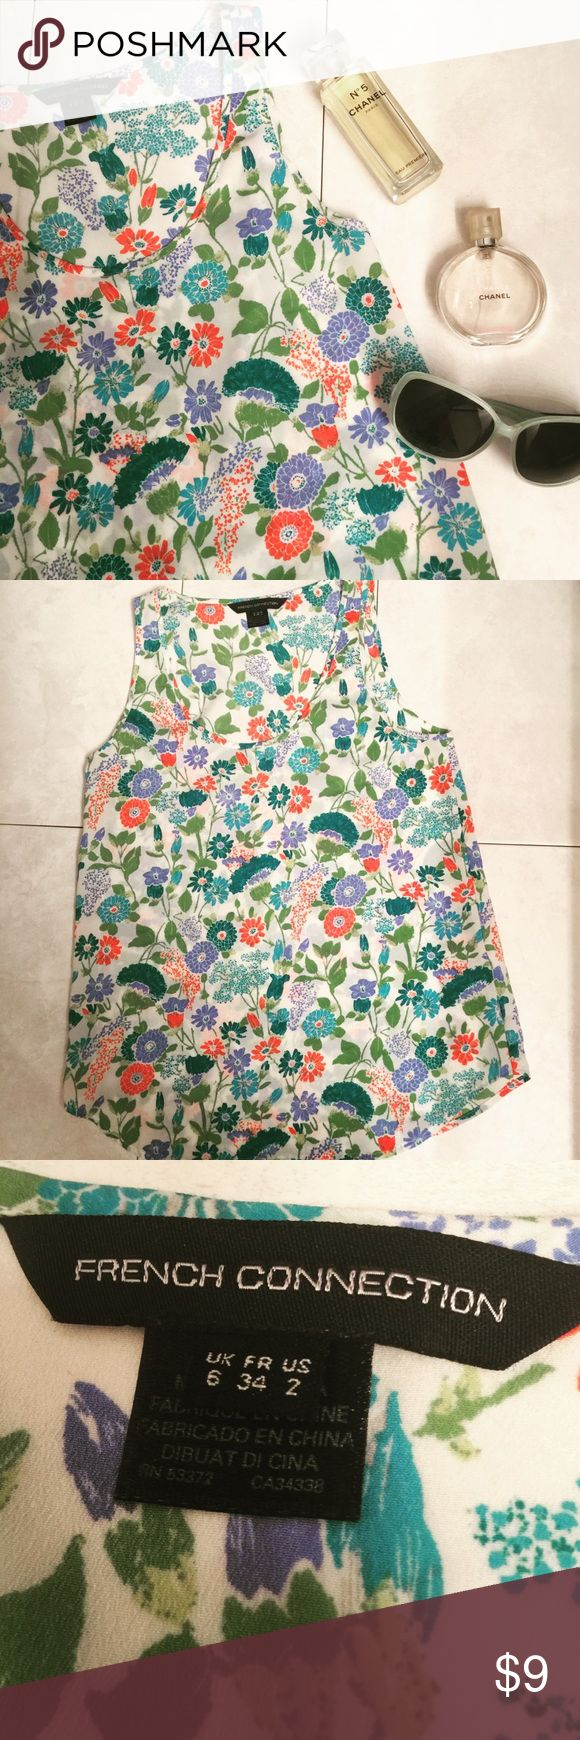 French Connection vibrant floral tank top 2 Small Great top by French Connection. Tag shows size US 2 - which is similar to a small. Looks great with jeans or shorts. Excellent condition. French Connection Tops Tank Tops